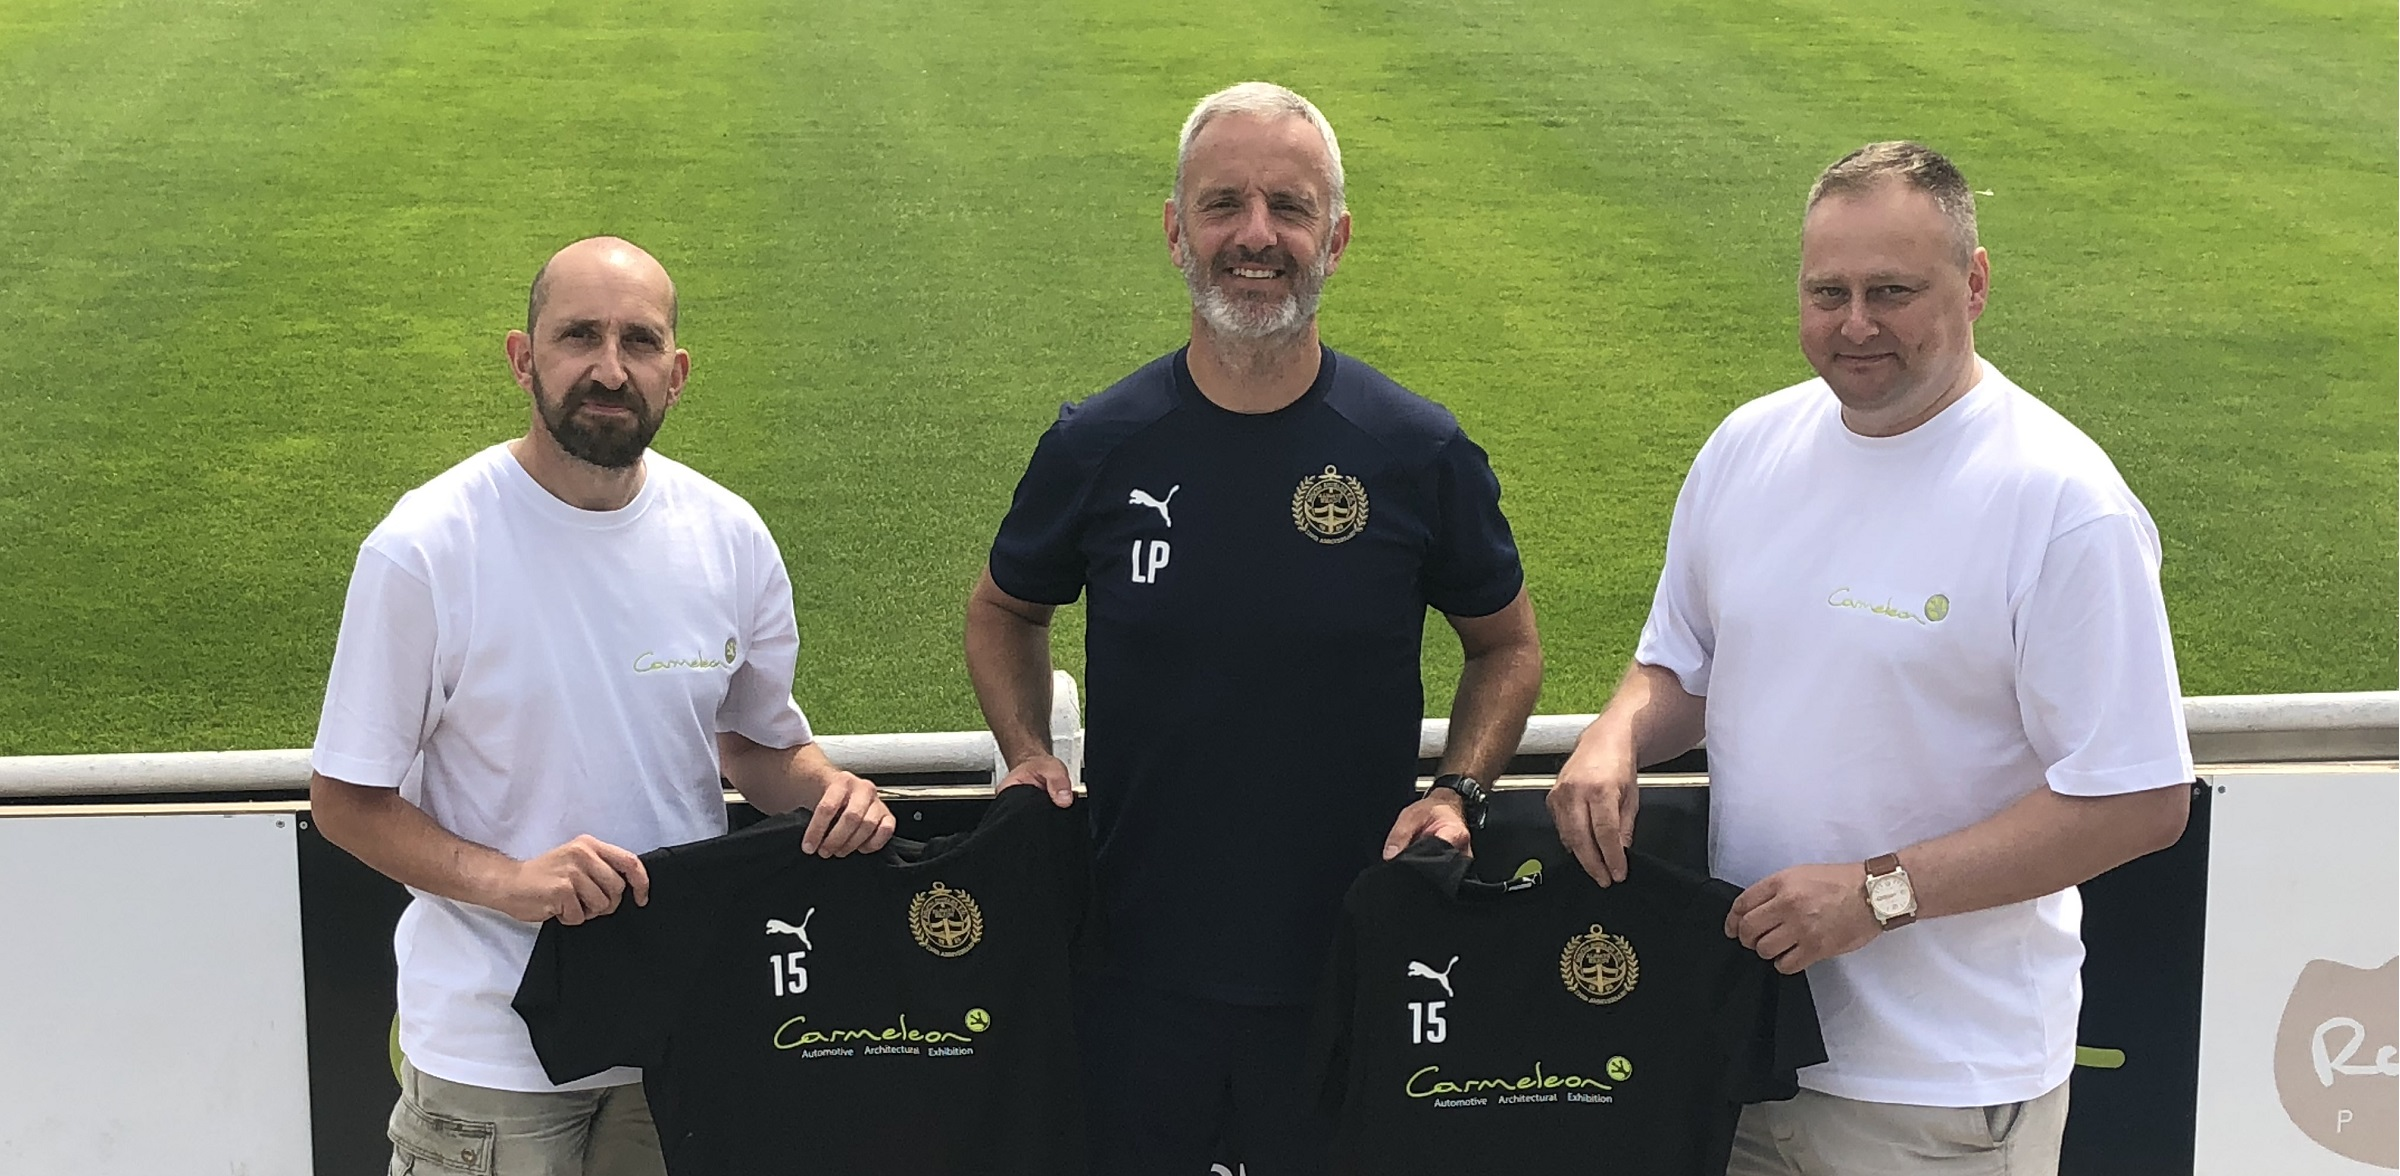 Carmeleon Concepts becomes club's first-team training kit sponsor